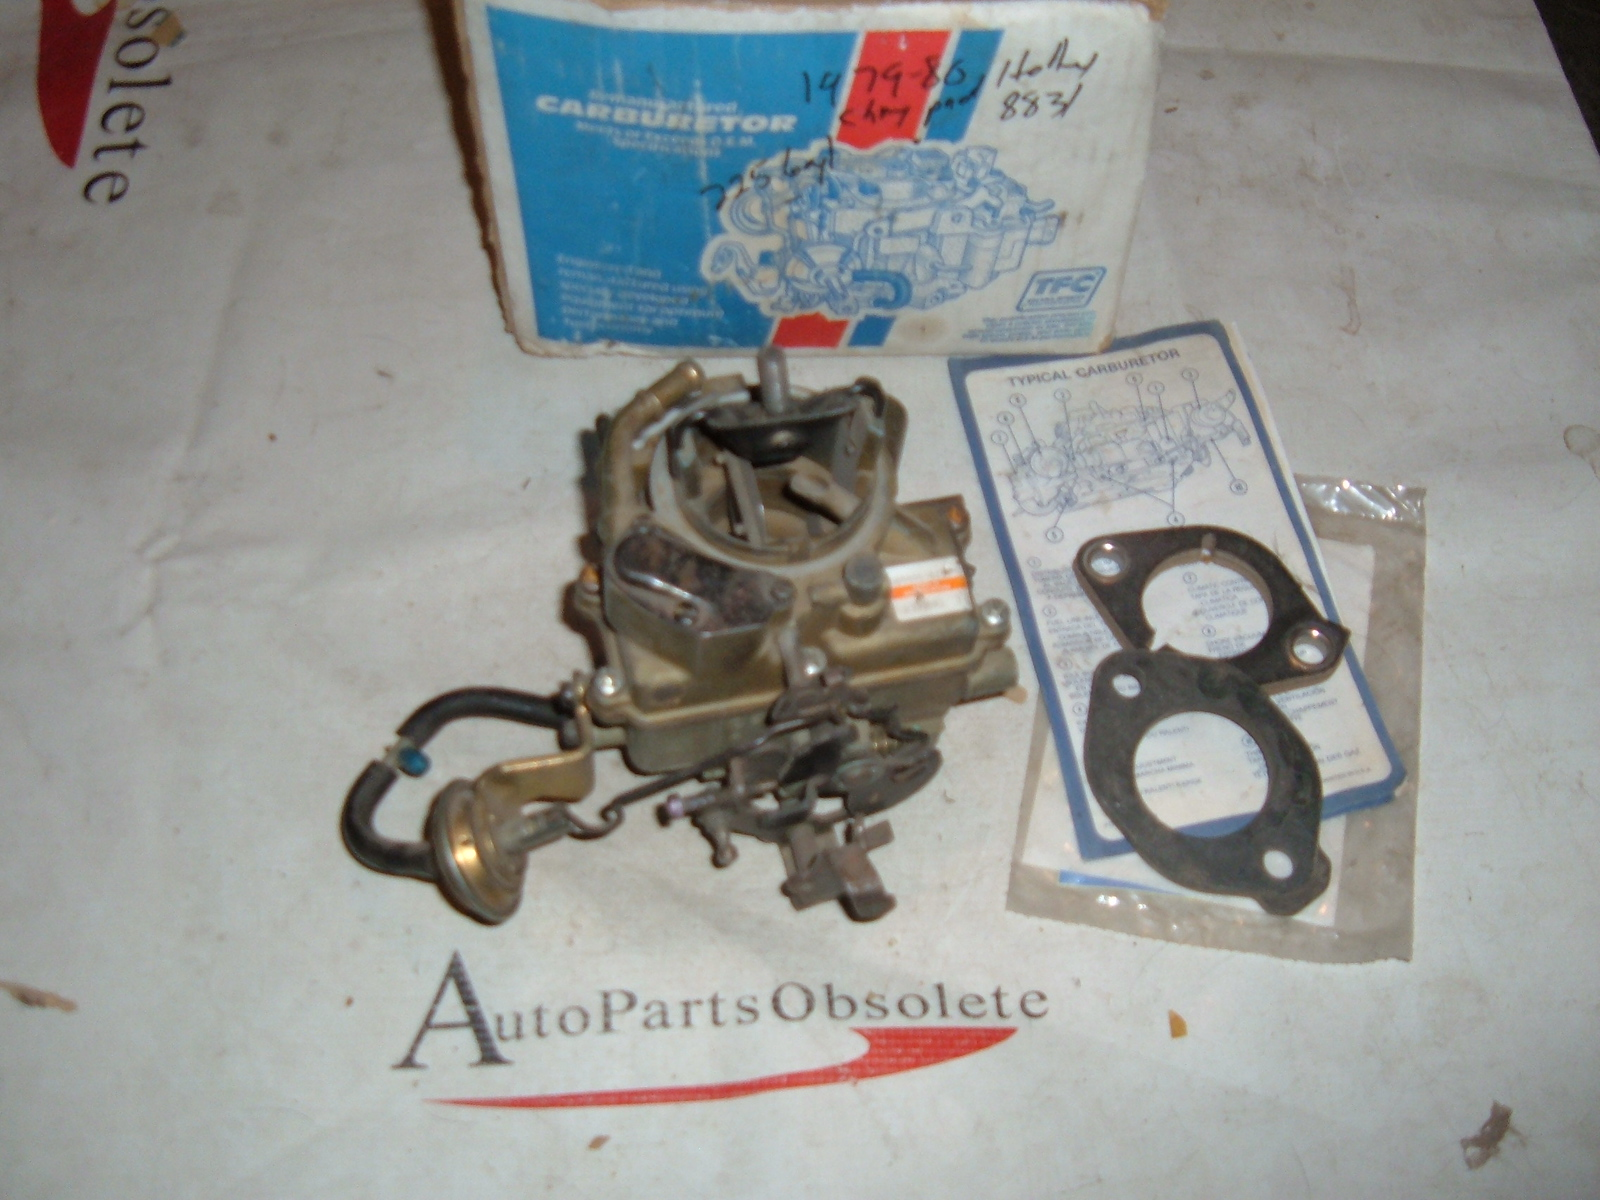 1979 80 dodge plymouth chrysler holly carburetor 225 6cyl rebuilt (z 8831)